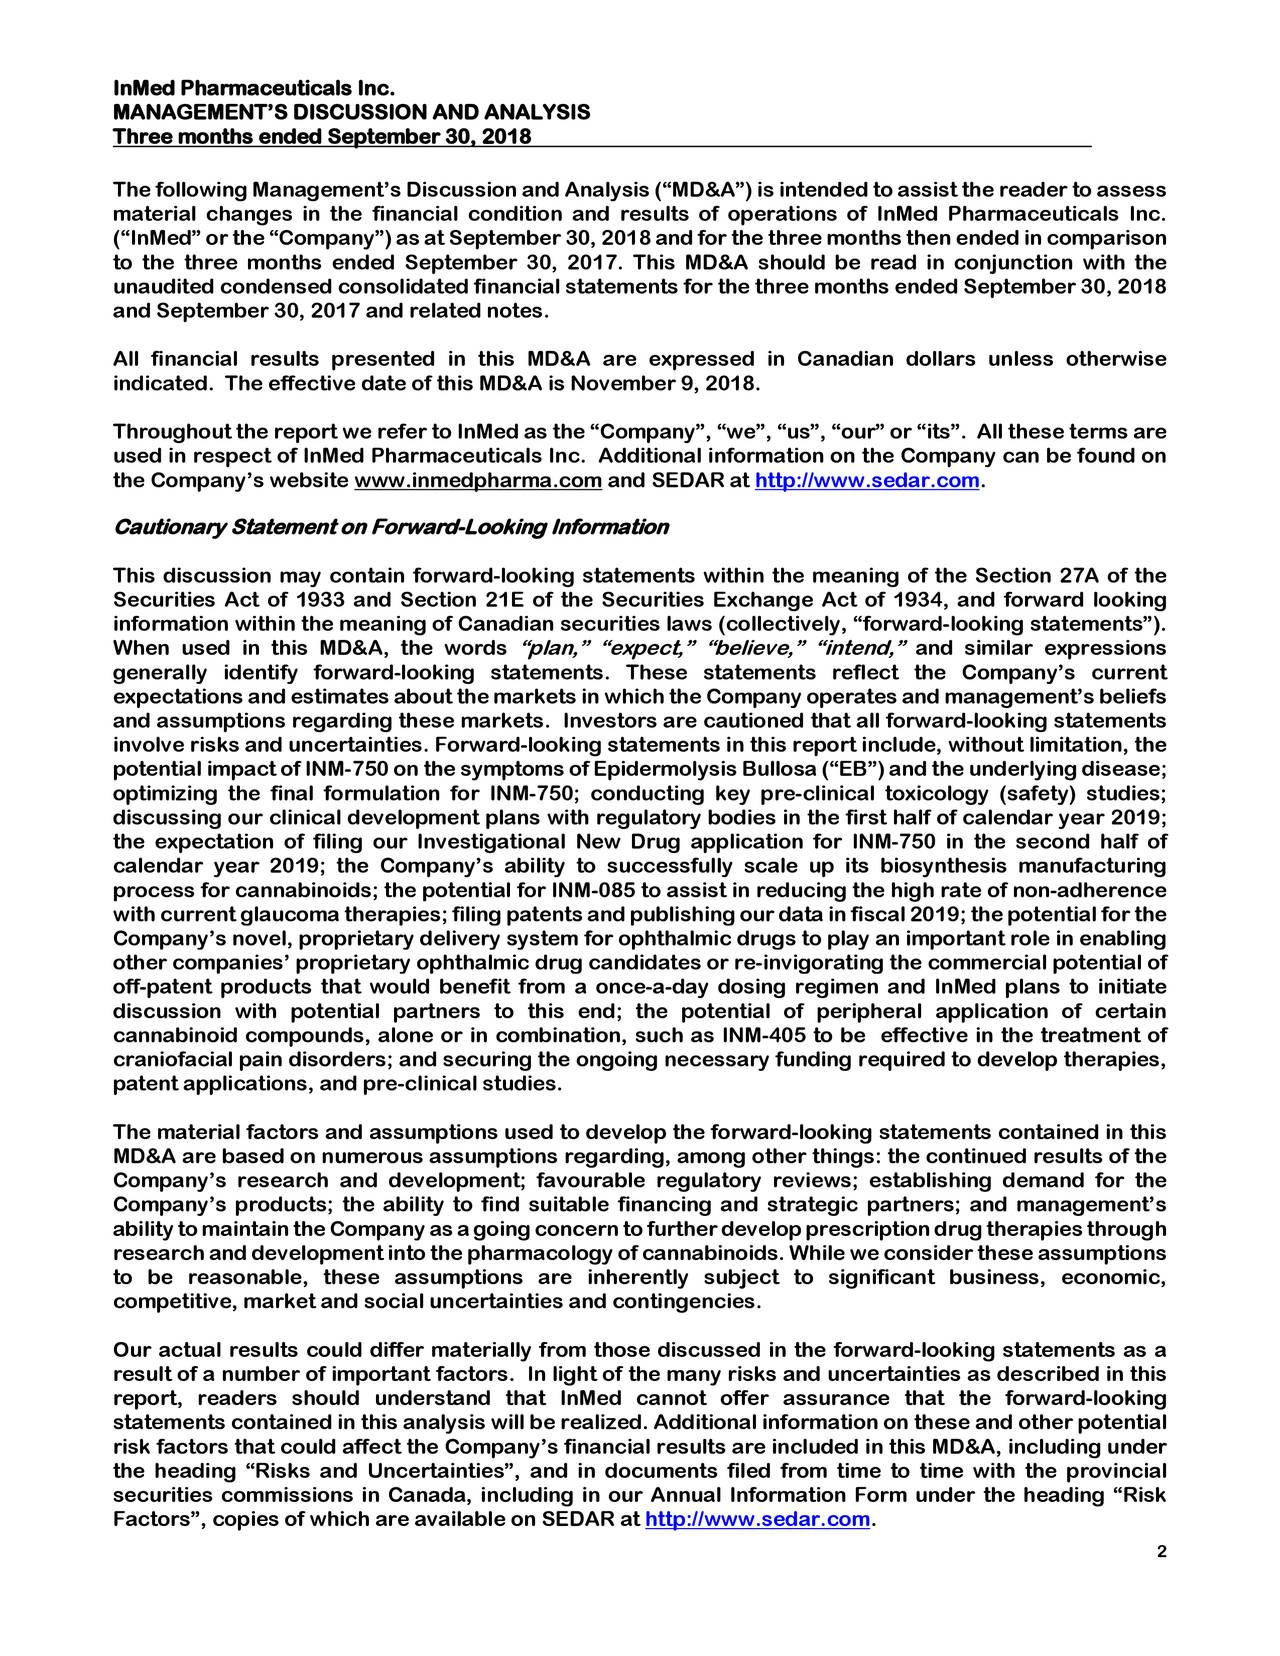 """MANAGEMENT'S DISCUSSION AND ANALYSIS Three months ended September 30, 2018 The following Management's Discussion and Analysis (""""MD&A"""") is intended to assist the reader to assess material changes in the financial condition and results of operations of InMed Pharmaceuticals Inc. (""""InMed"""" or the """"Company"""") as atSeptember 30, 2018 and for the three monthsthen ended in comparison to the three months ended September 30, 201 7. This MD&A should be read in conjunction with the unaudited condensed consolidated financial statements for the three months ended September 30, 2018 and September 30, 2017 and related notes. All financial results presented in this MD&A are expressed in Canadian dollars unless otherwise indicated. The effective date of this MD&A isNovember 9, 2018. Throughout the report we refer to InMedas the """"Company"""", """"we"""", """"us"""", """"our"""" or """"its"""". All these terms are used in respect of InMed Pharmaceuticals Inc. Additional information on the Company can be found on the Company's website www.inmedpharma.com and SEDAR at http://www.sedar.com. Cautionary Statement on Forward-Looking Information This discussion may contain forward -looking statements within the meaning of the Section 27A of the Securities Act of 1933 and Section 21E of the Securities Exchange Act of 1934, and forward looking information within the meaning of Canadian securities laws (collectively, """"forward-looking statements""""). When used in this MD&A, the words """"plan,"""" """"expect,"""" """"believe,"""" """"intend,"""" and similar expressions generally identify forward -looking statements. These statements reflect the Company's current expectations and estimates about the markets in which the Company operates and management's beliefs and assumptions regarding these markets. Investors are cautioned that all forward-looking statements involve risks and uncertainties. Forward-looking statements in this report include, without limitation, the potential impact of INM-750 on the symptoms of Epidermolysis Bullosa ("""" EB"""") and the """